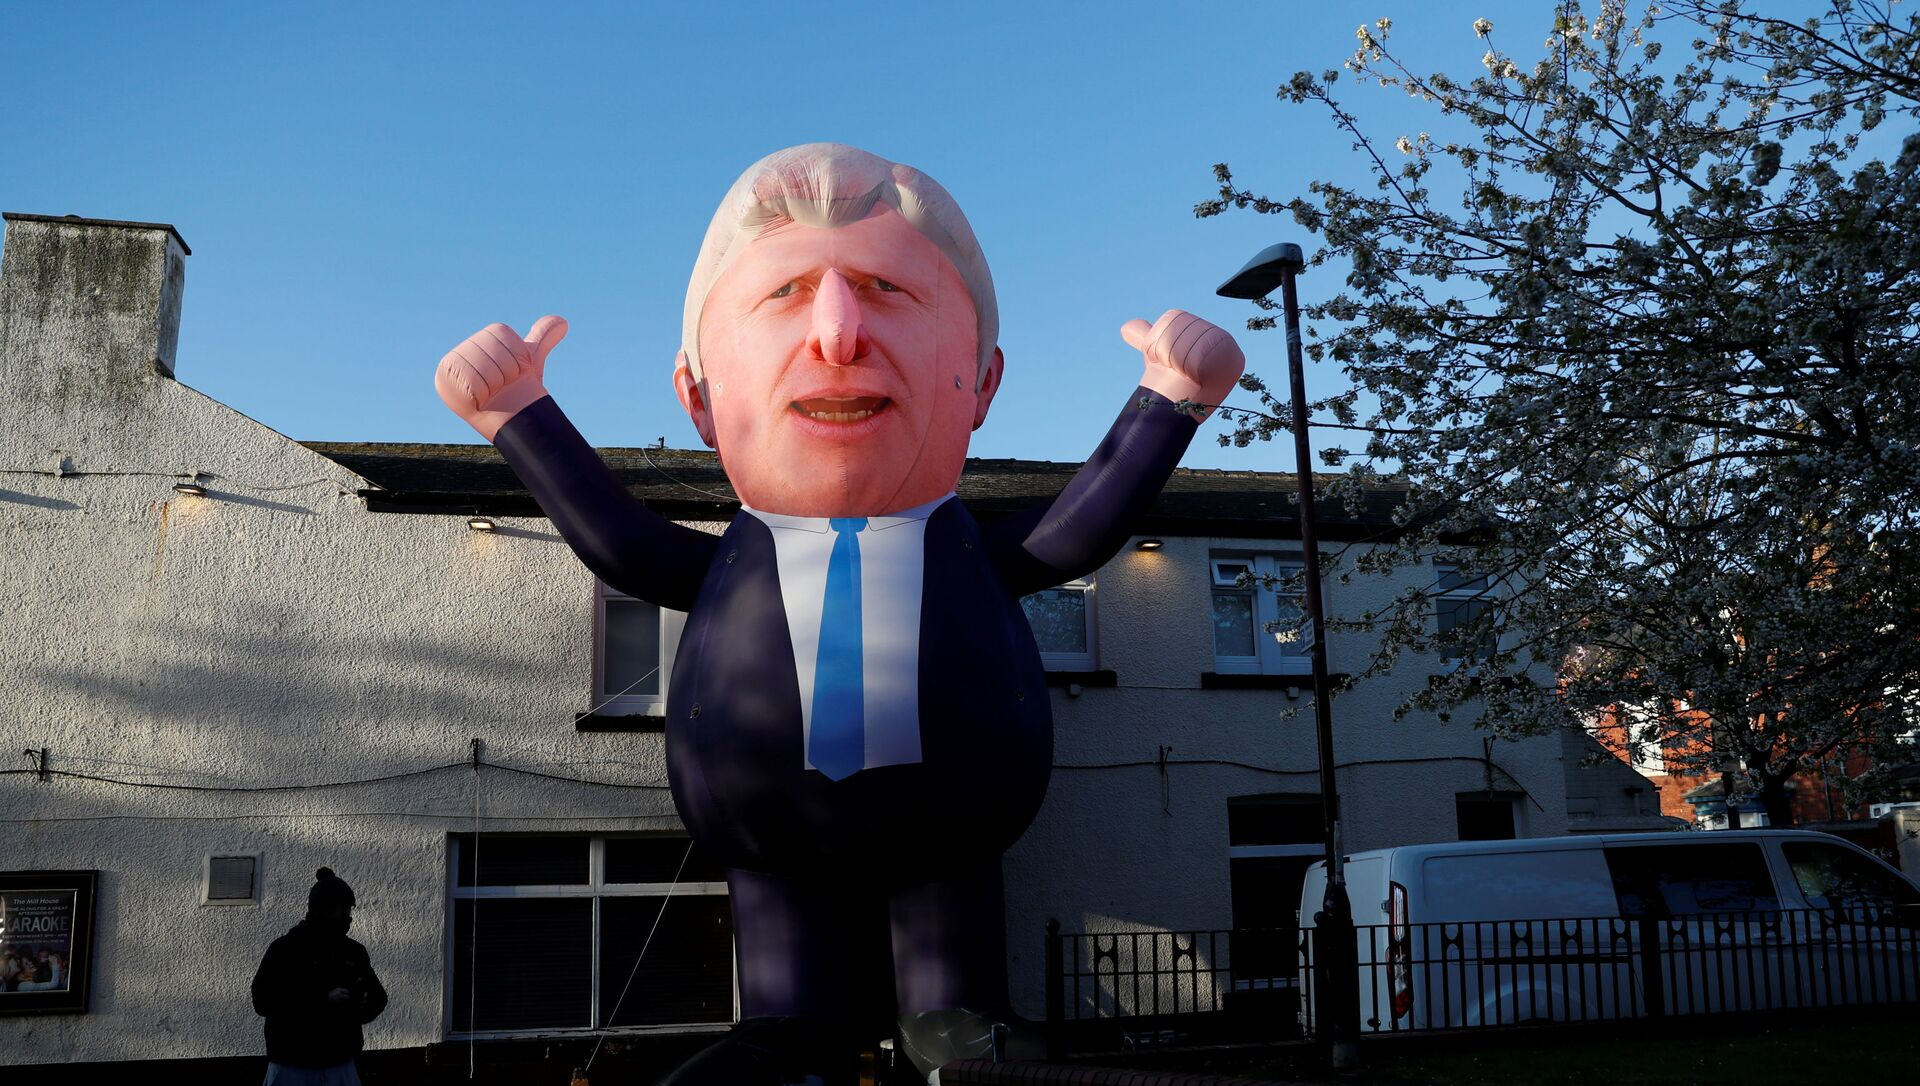 An inflatable figure of Prime Minister Boris Johnson is seen outside Mill House Leisure Centre as ballots are being counted, in Hartlepool, Britain May 7, 2021 - Sputnik International, 1920, 07.05.2021